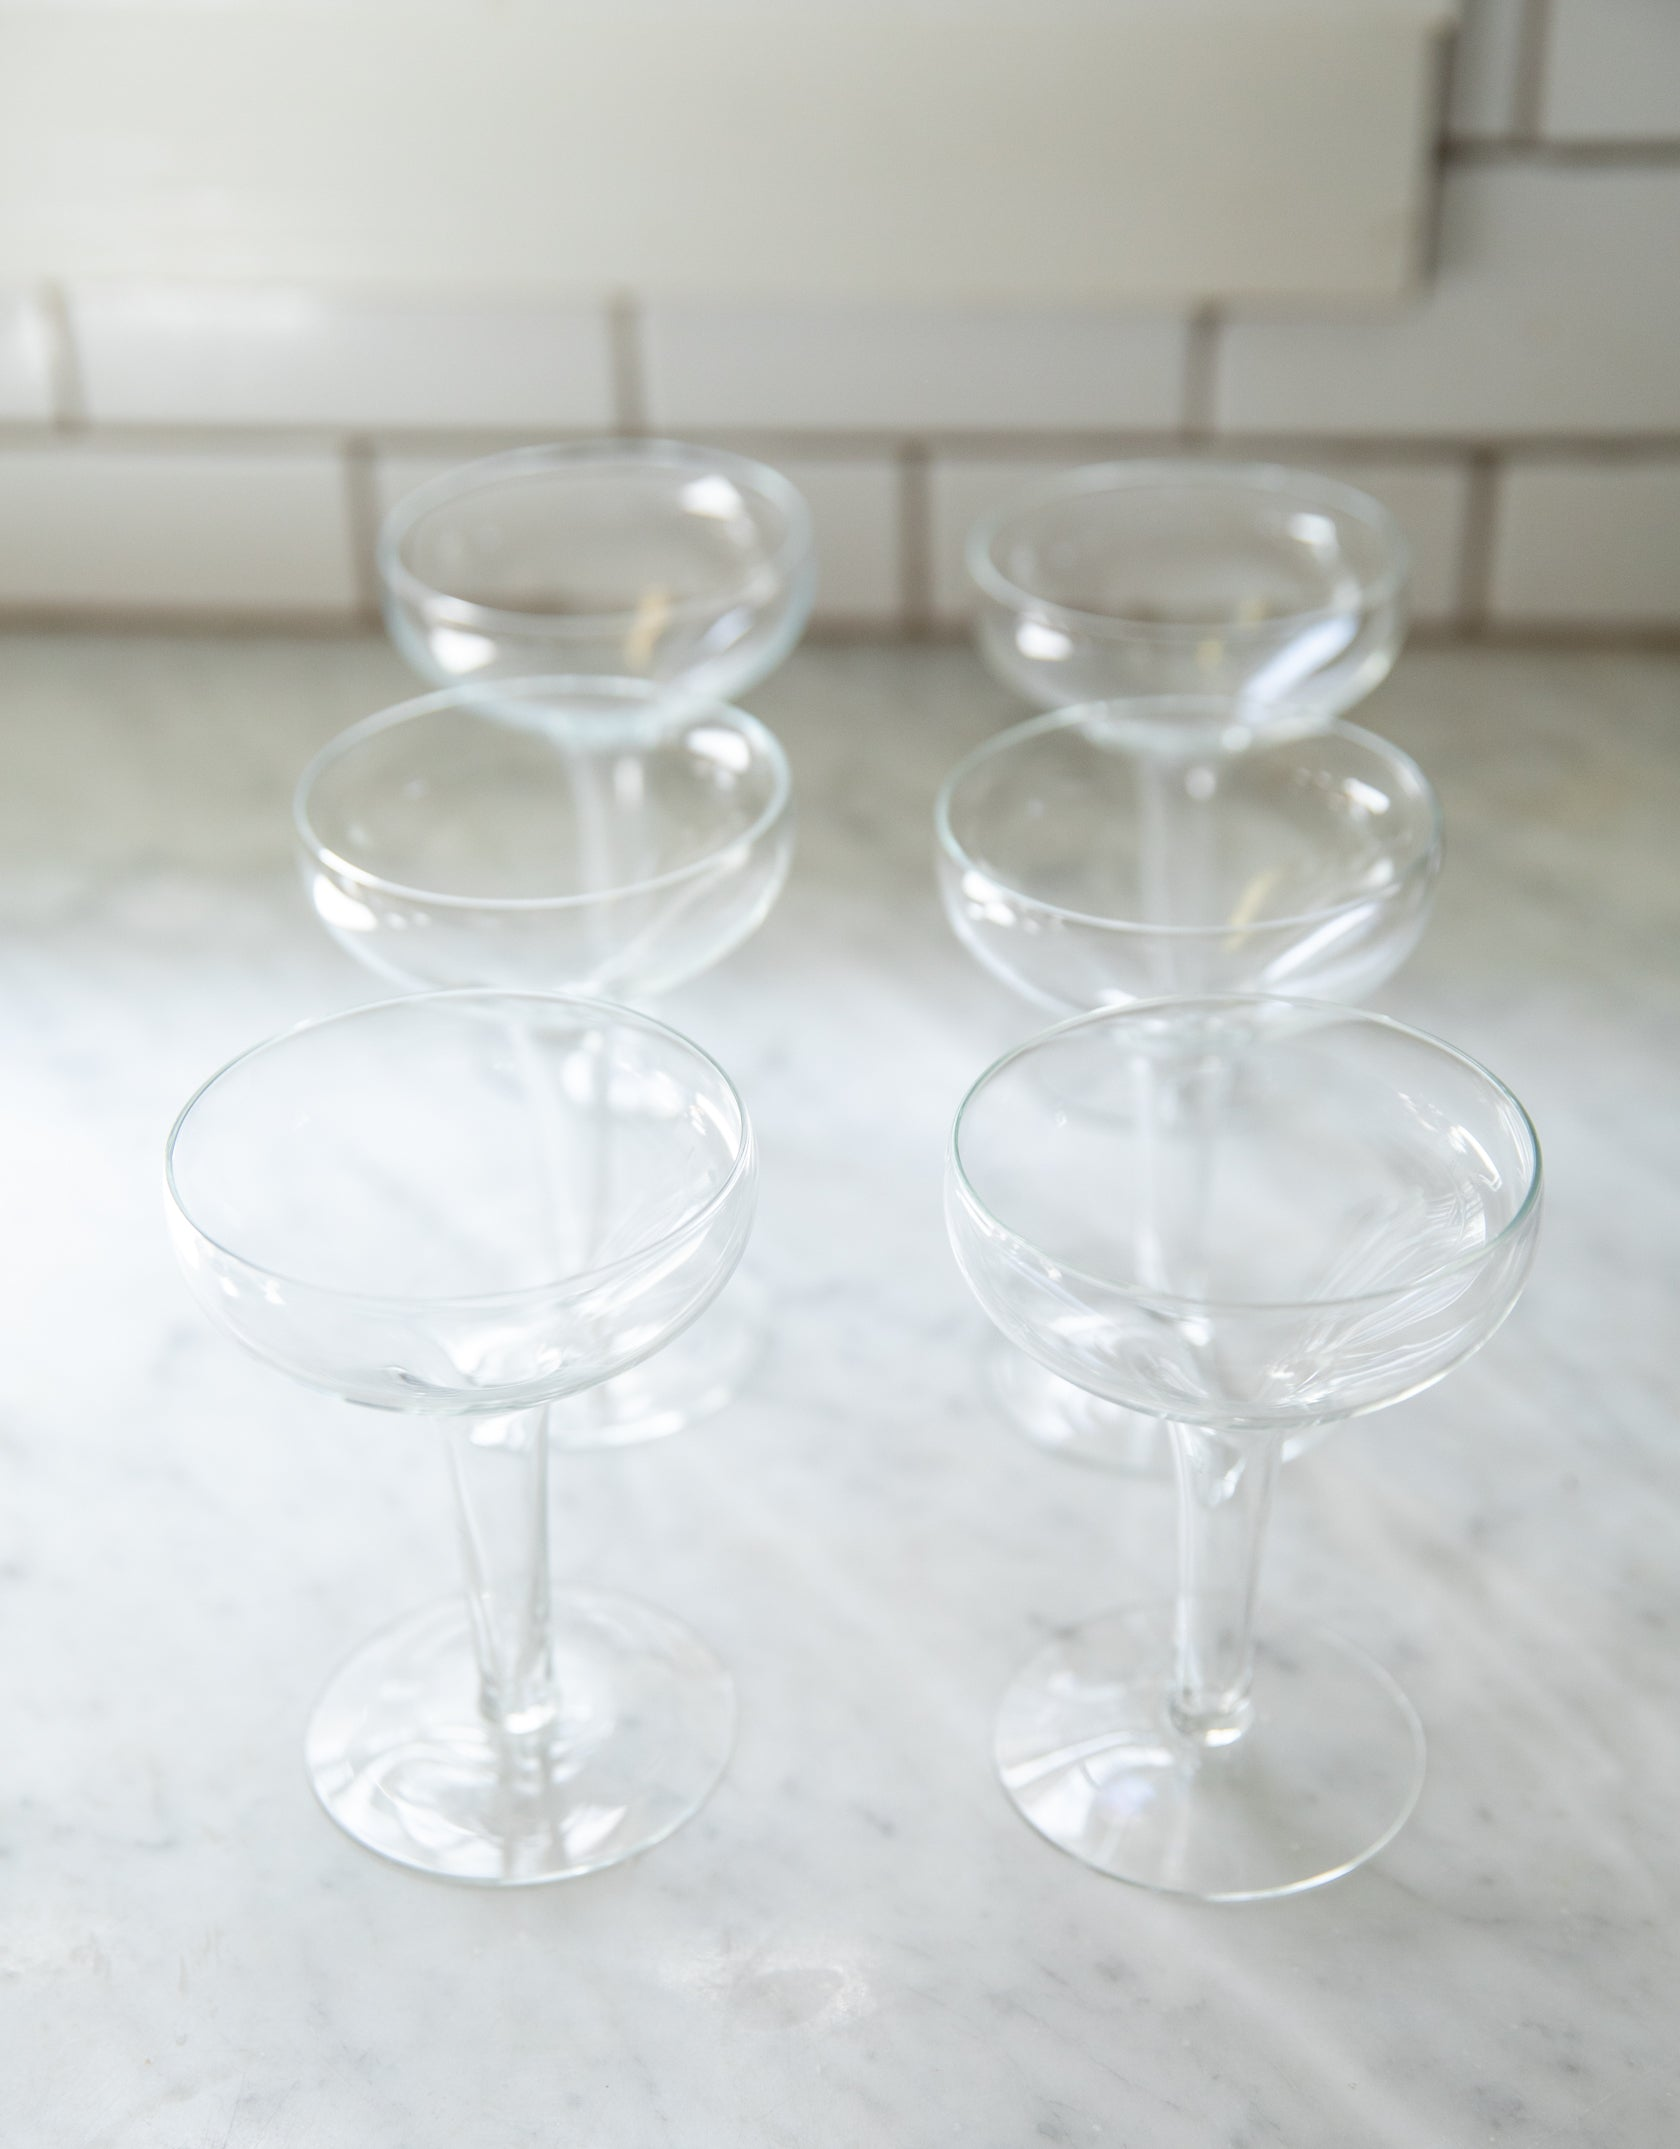 Classic Vintage Champagne Coupes with Well Stem, set of 6